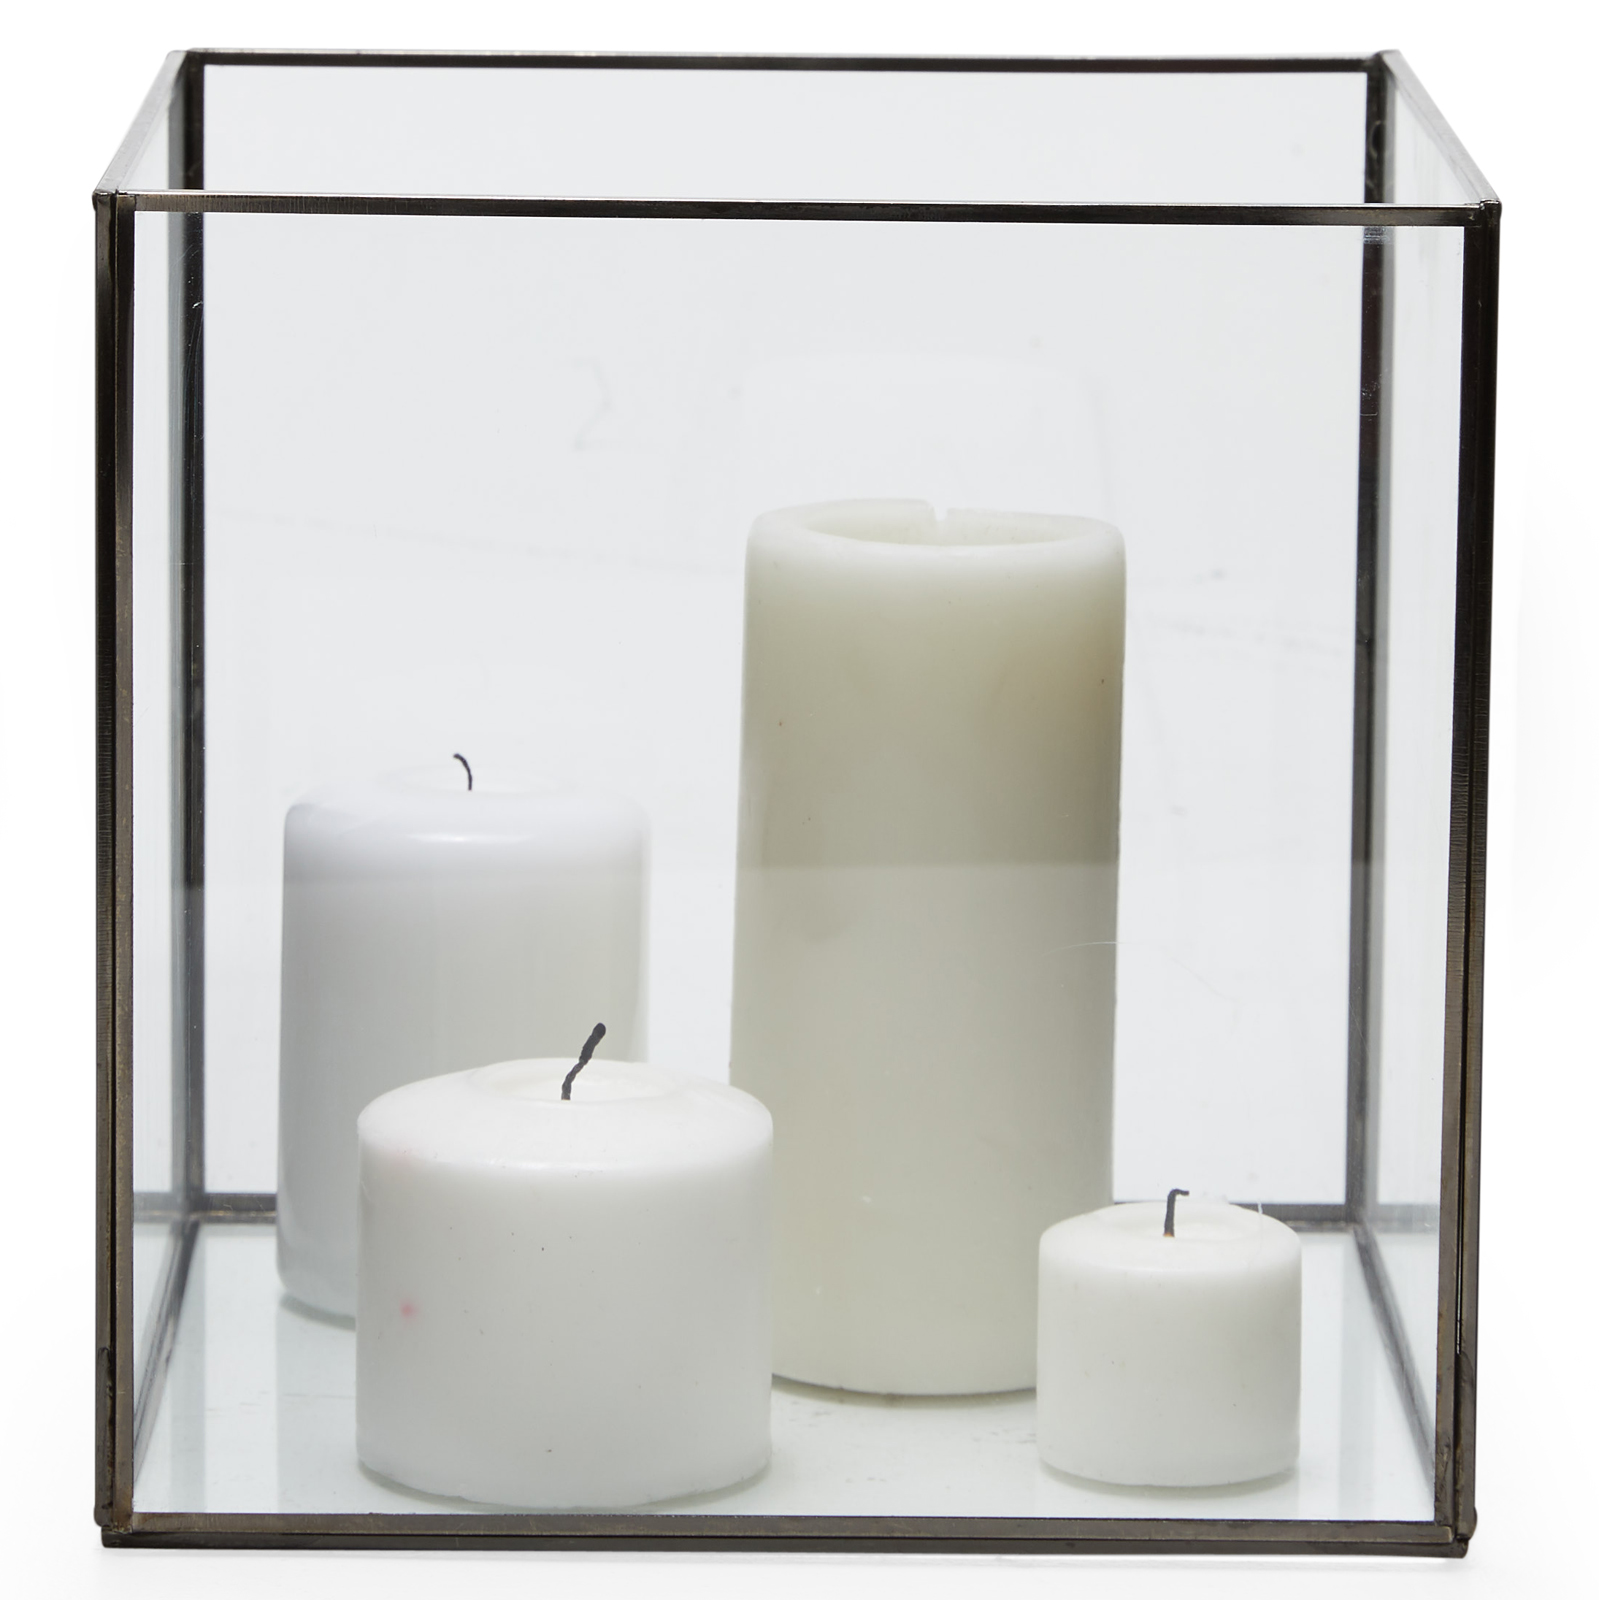 Square black glass candle holder